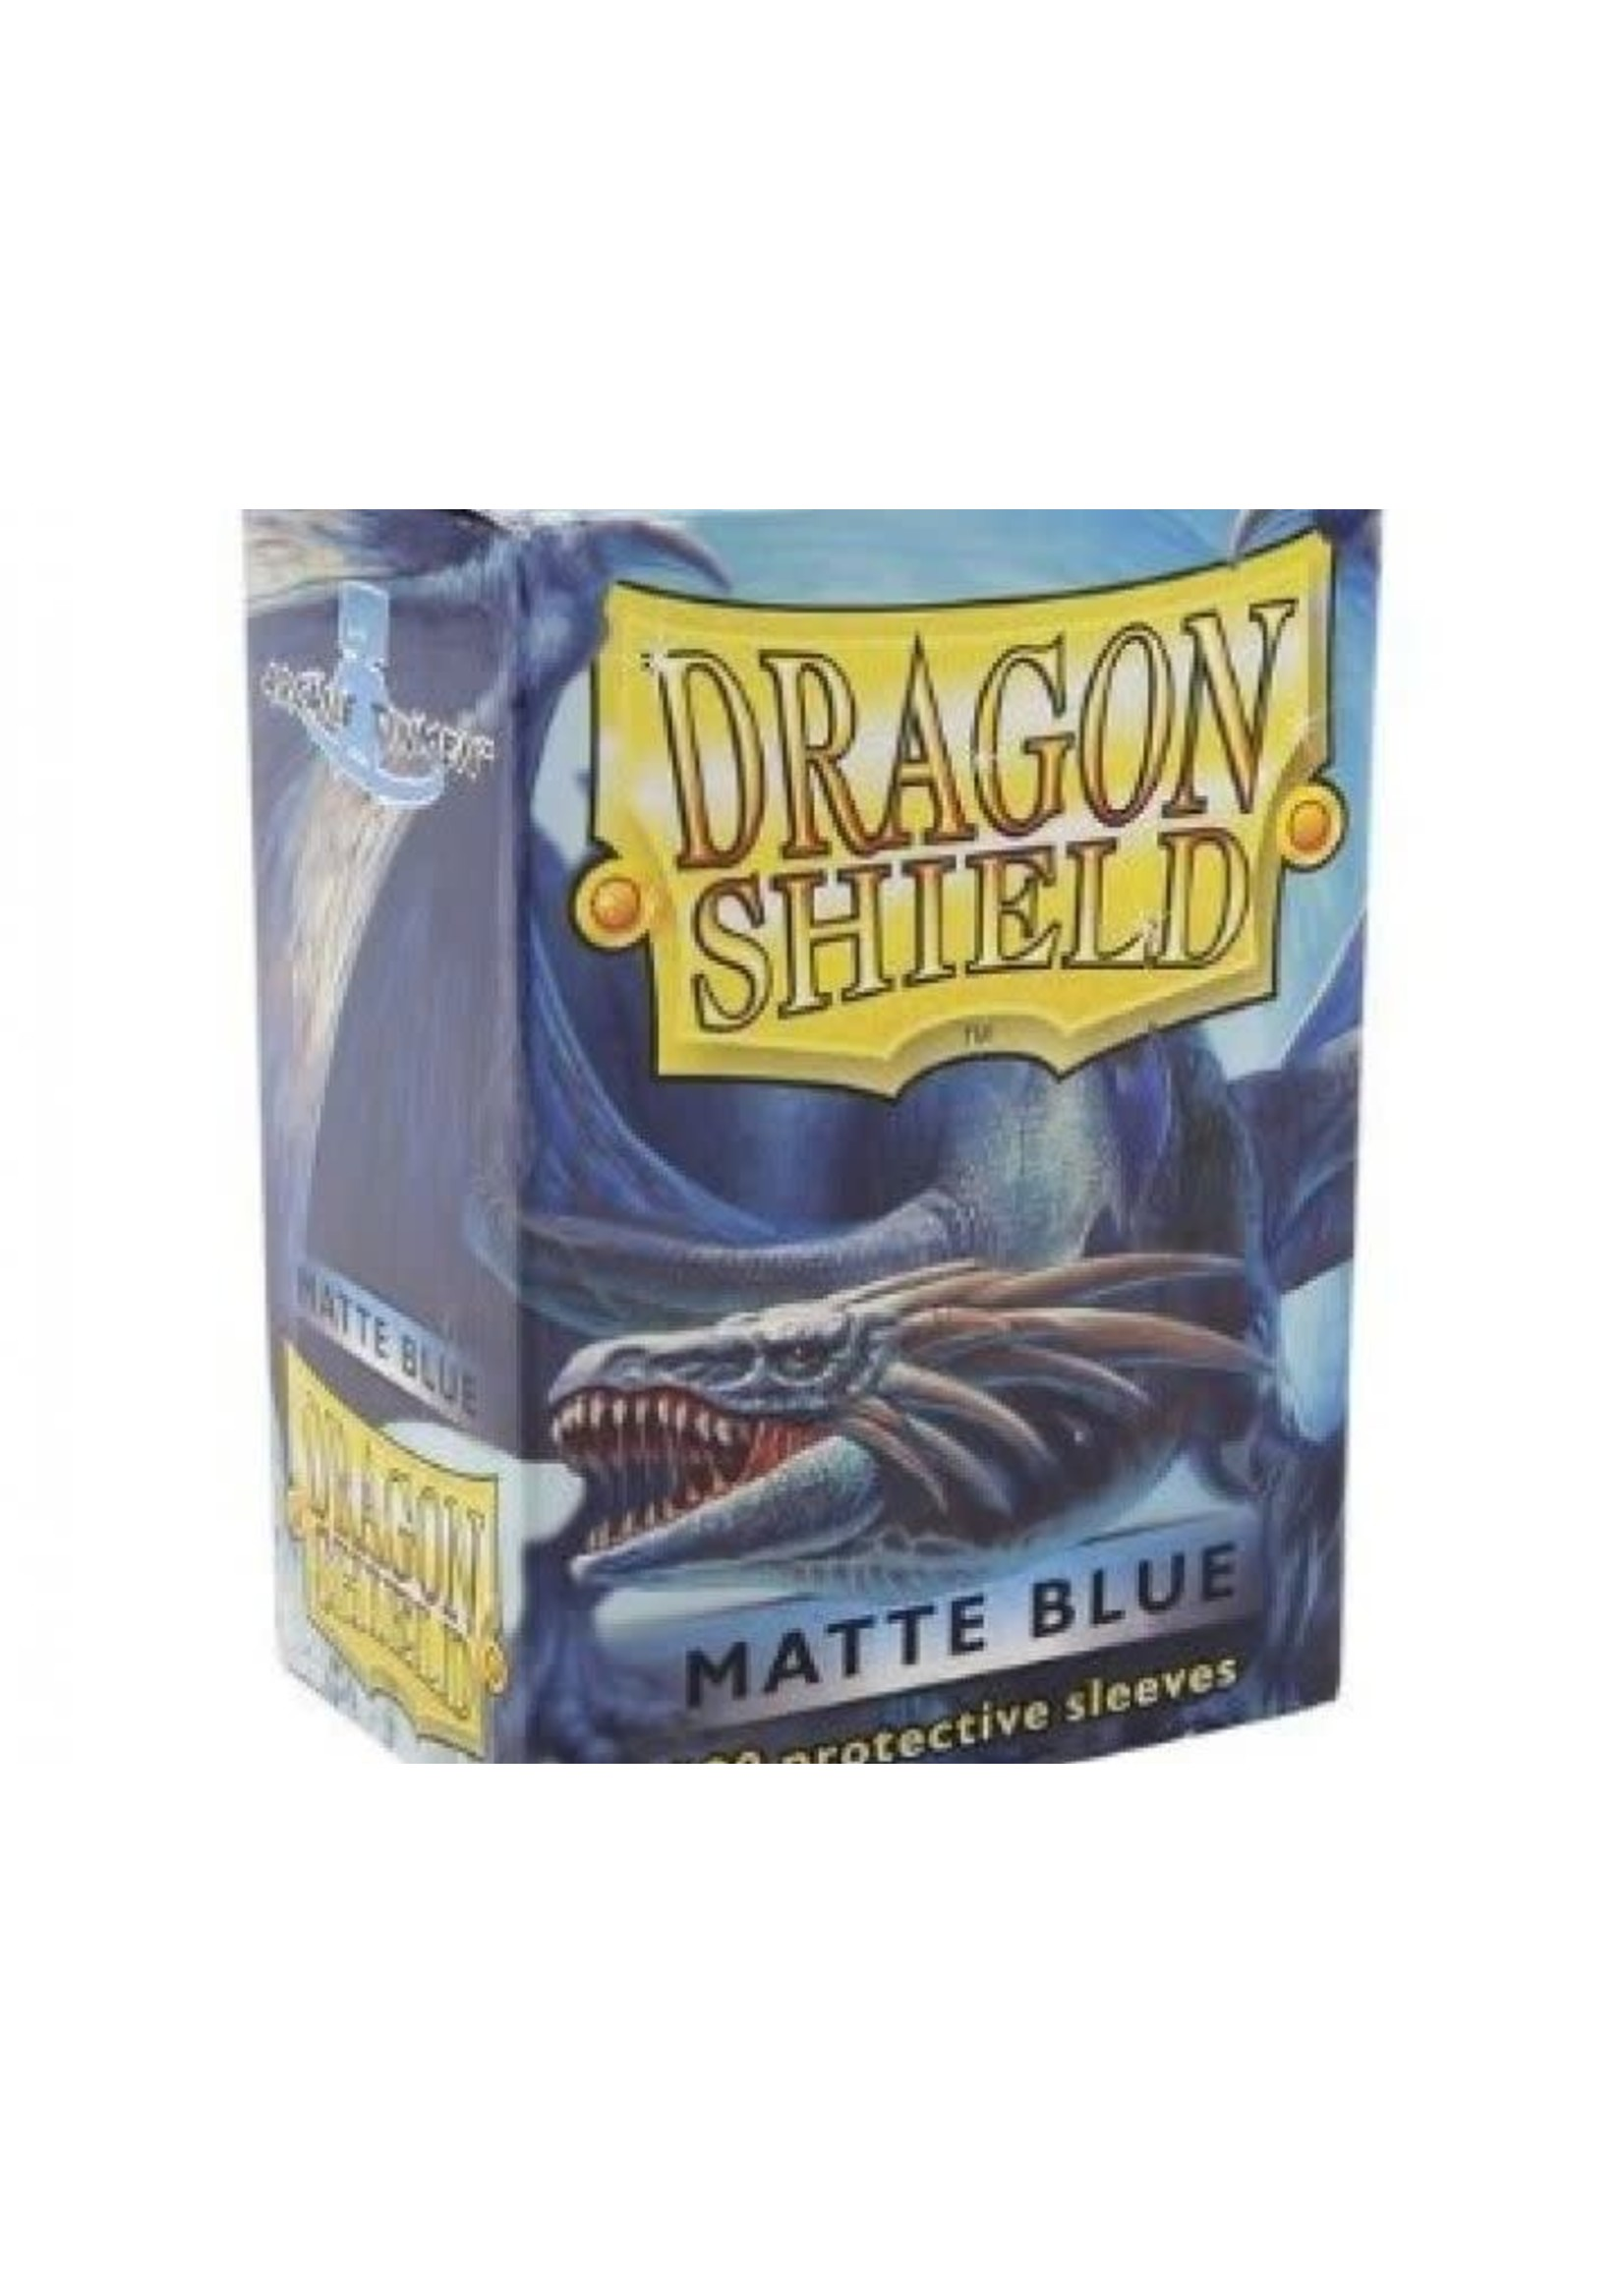 Dragonshield Sleeves Matte Blue